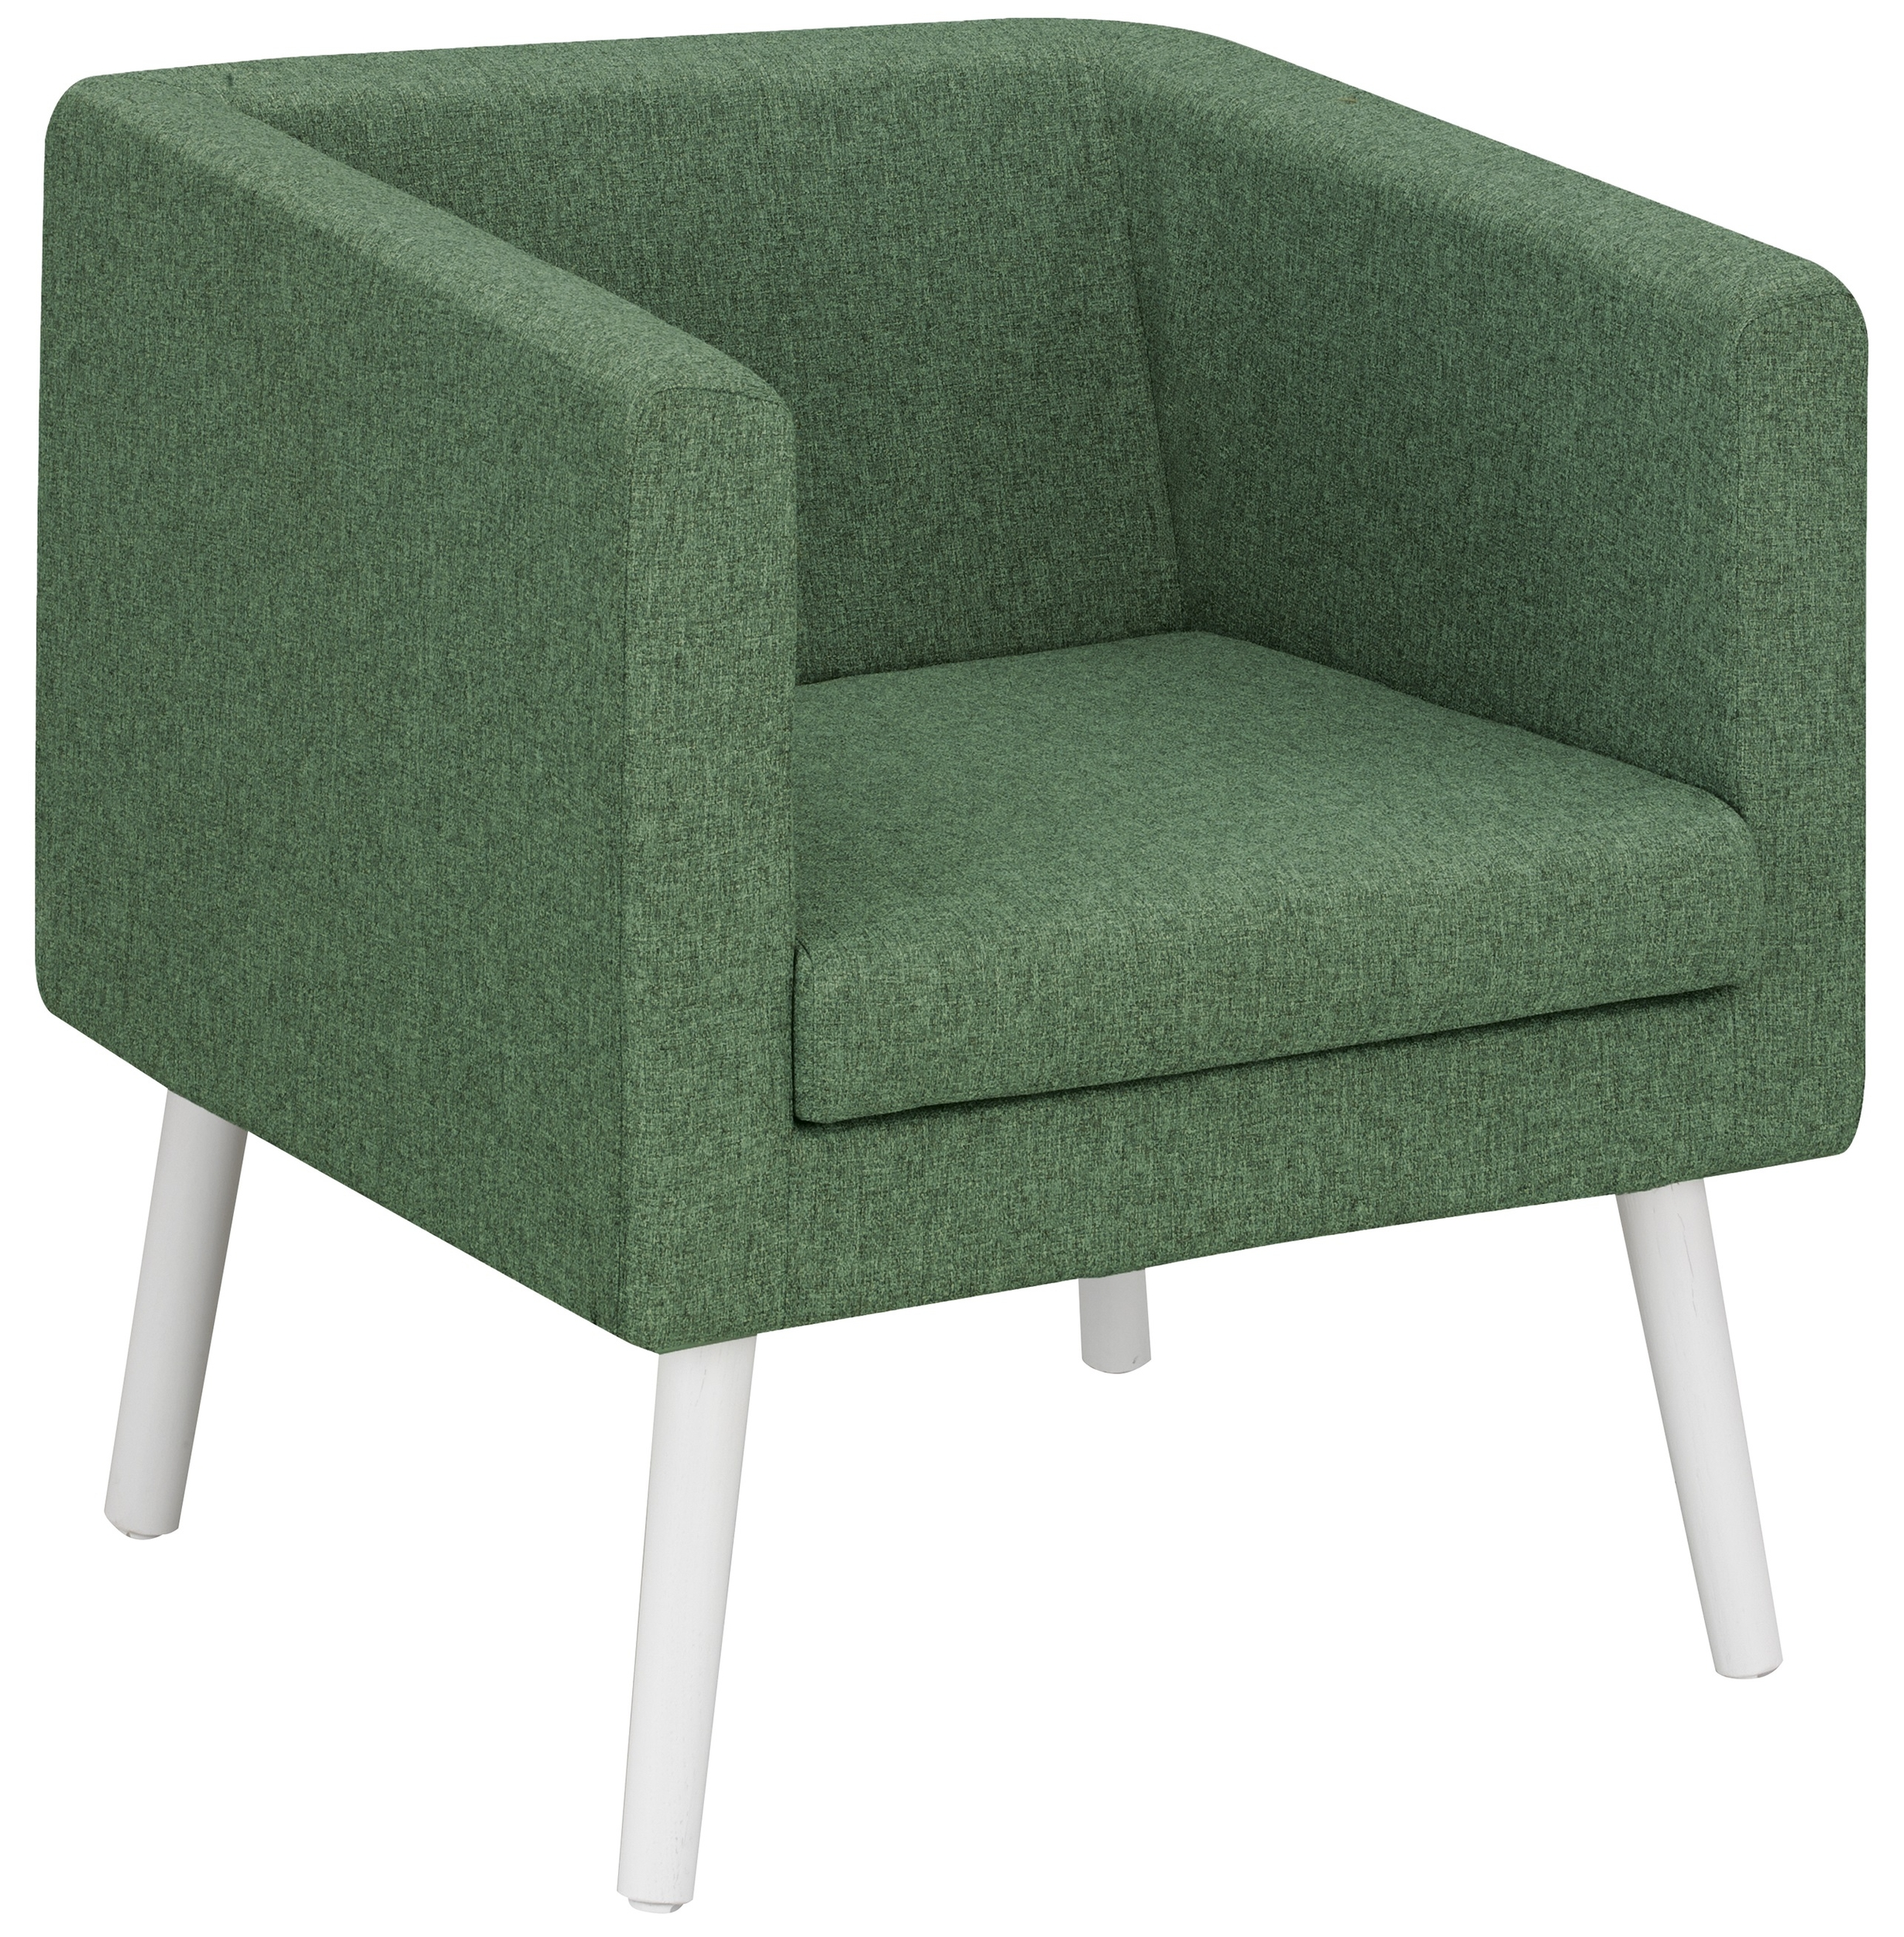 X-SPACE FAUTEUIL 1 PLACE VERT FOREST